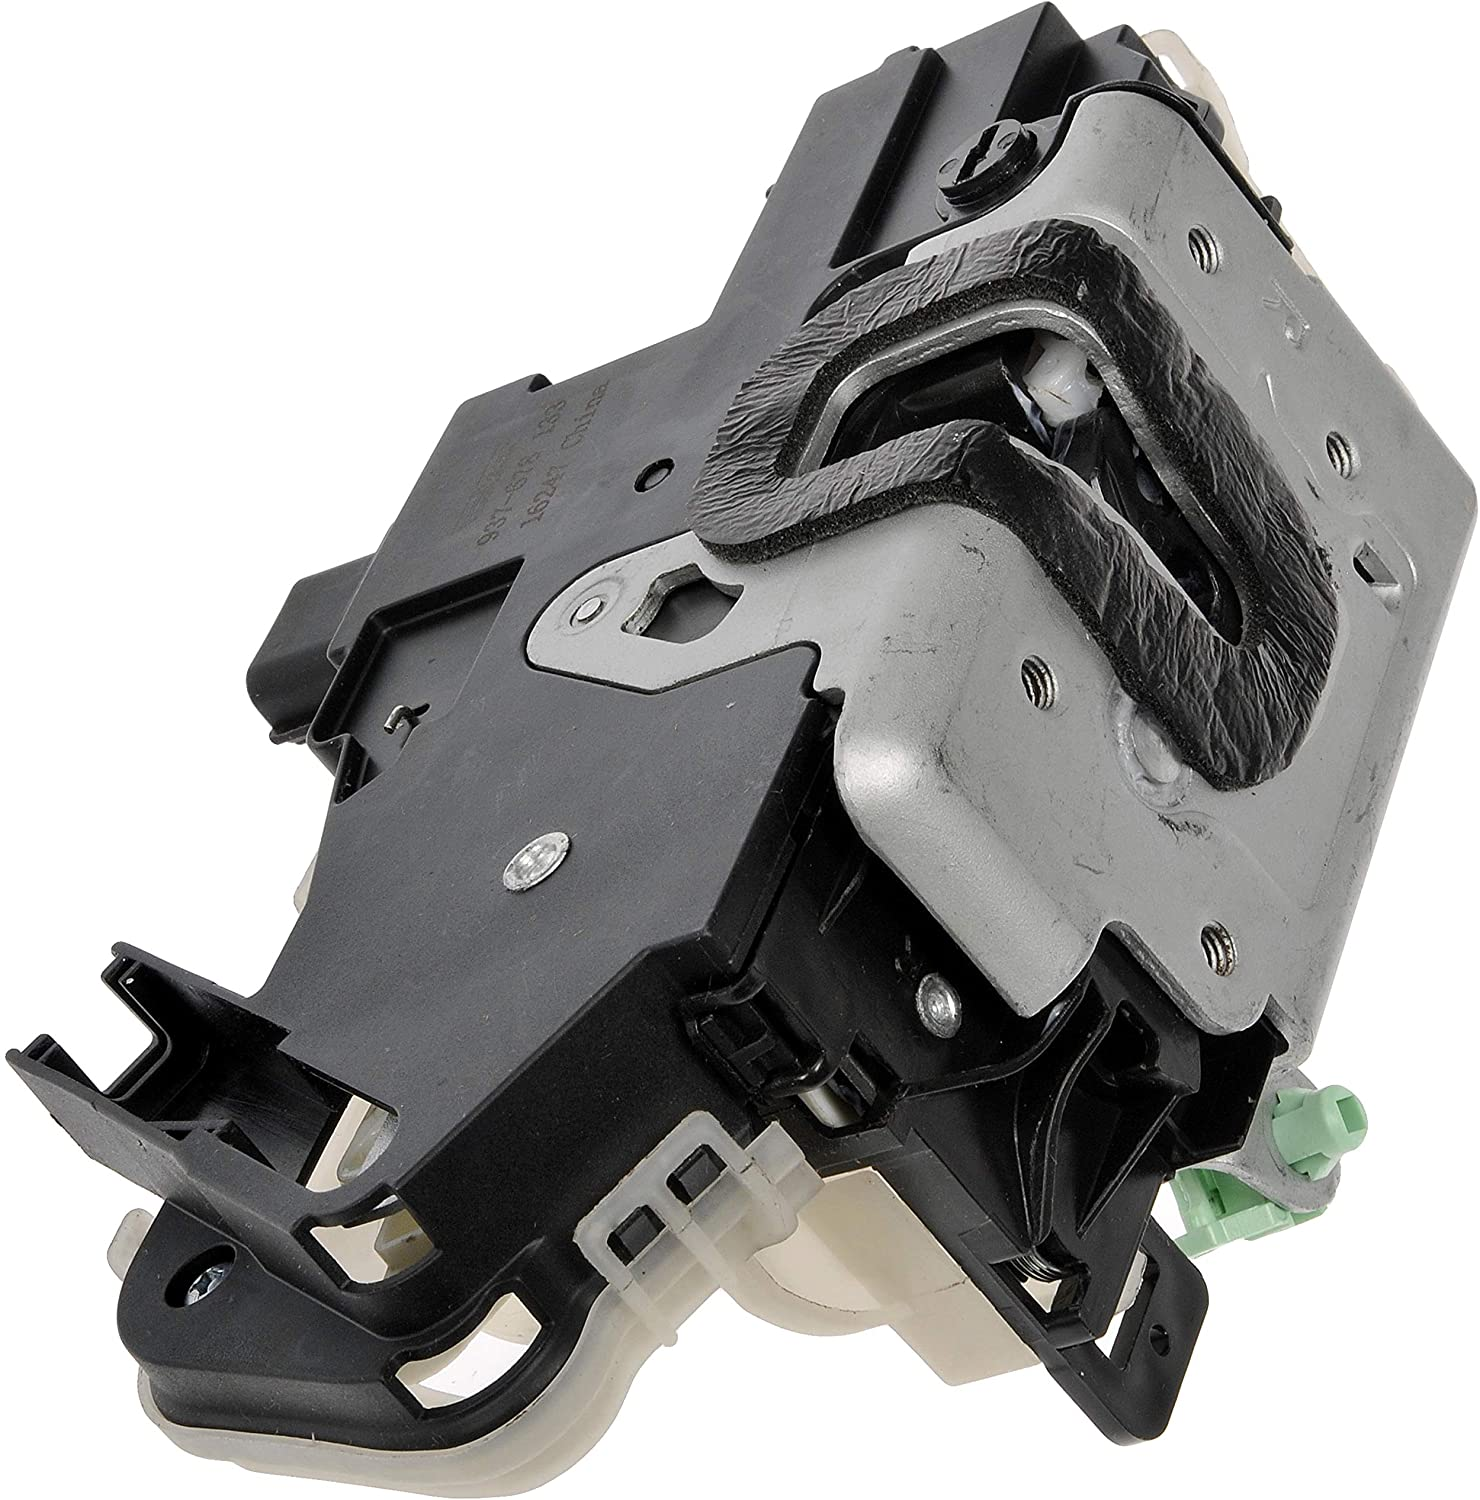 Dorman 937-673 Front Driver Side Door Lock Actuator Motor for Select Ford//Lincoln Models